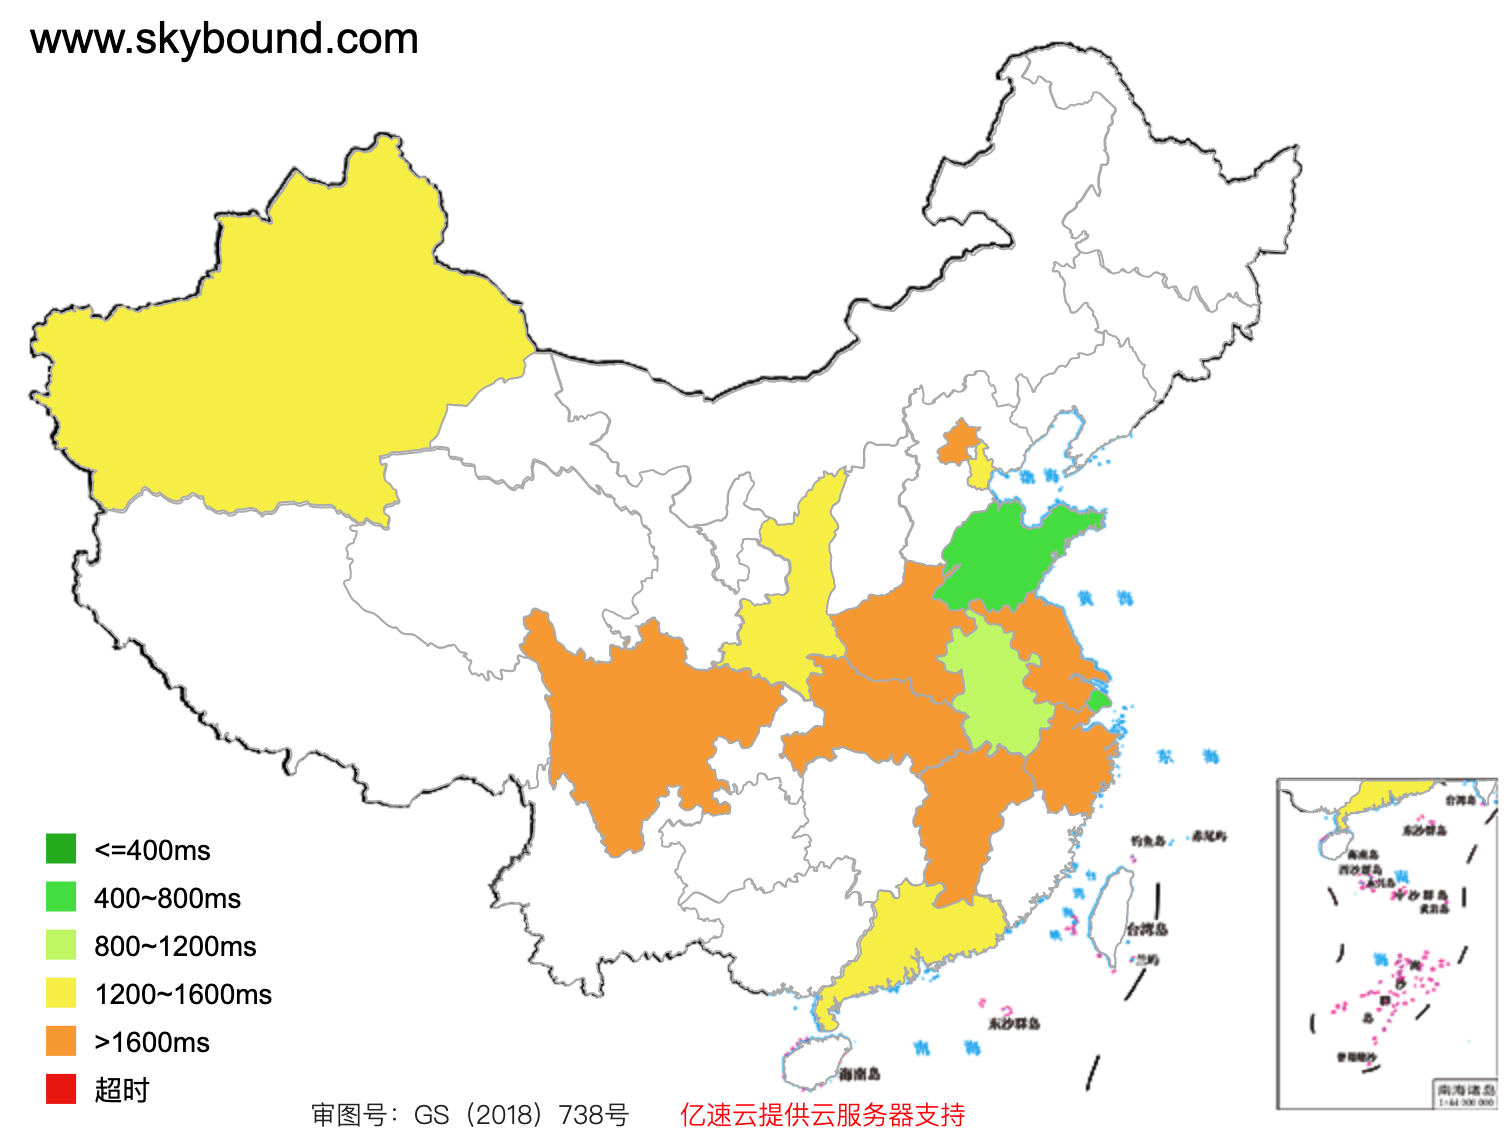 www.skybound.com access speed across mainland China (green: fast, red: slow)